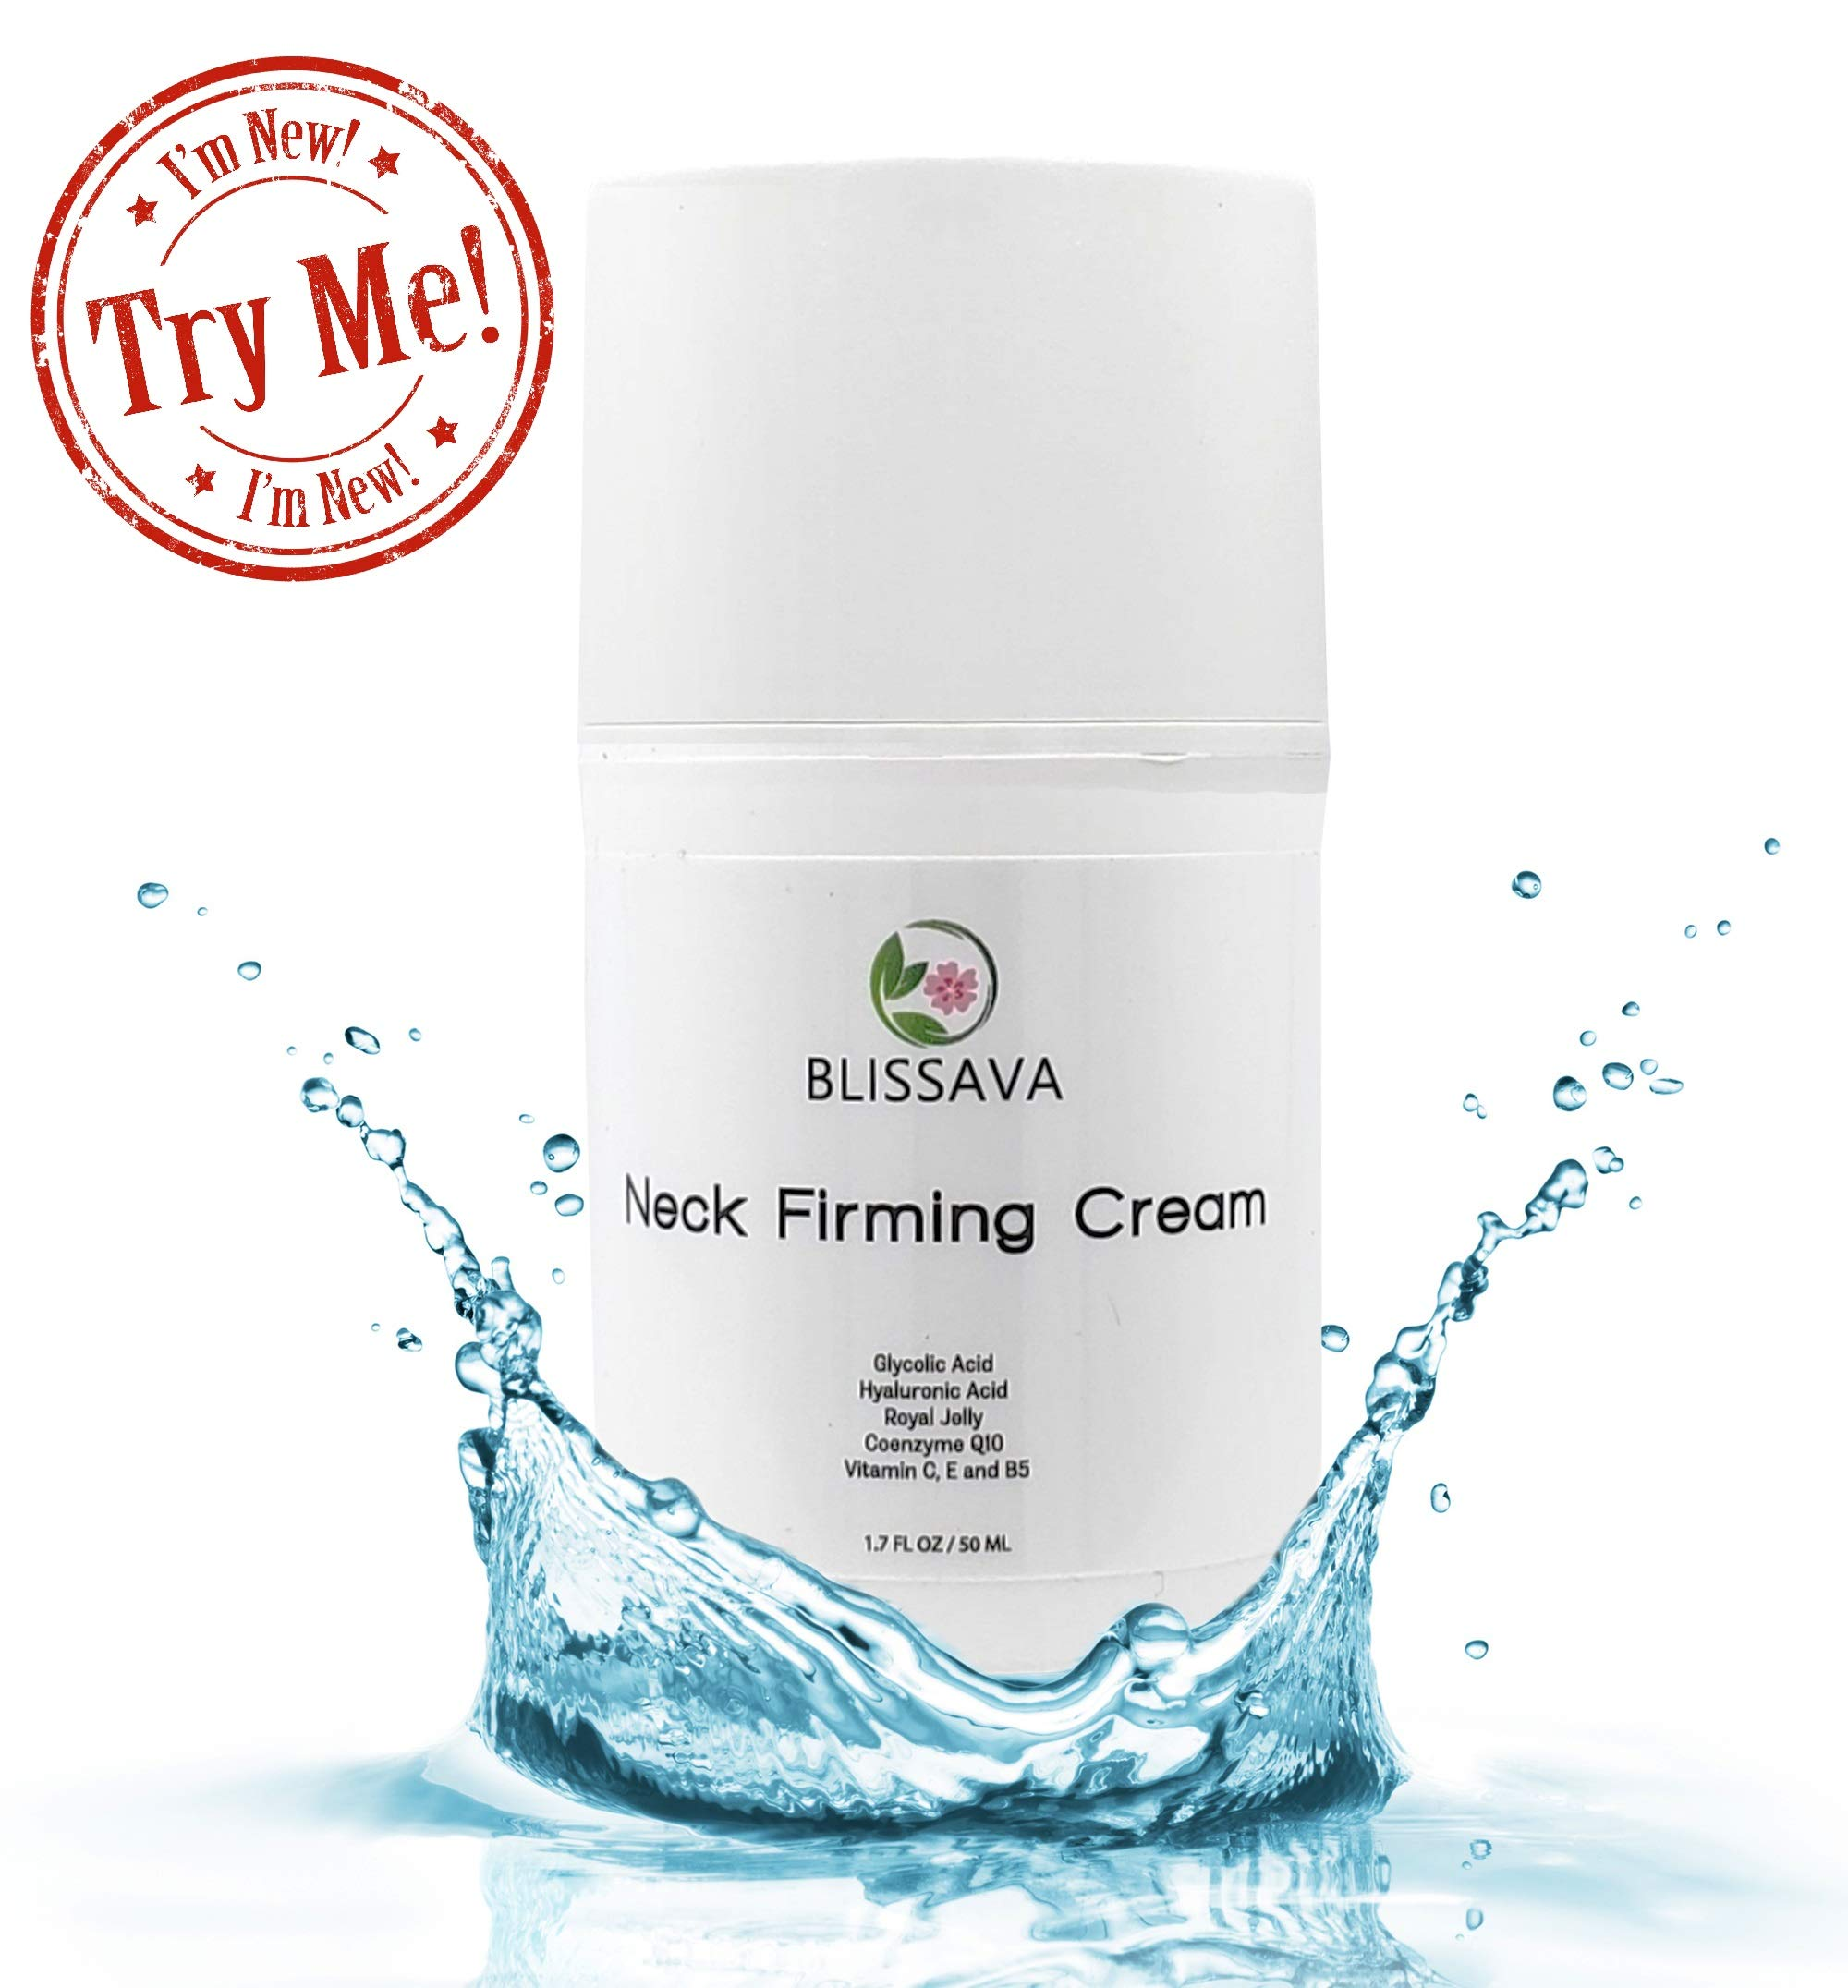 Turkey Neck Cream for Crepey Skin - Neck Firming Cream for Double Chin and Sagging Skin - Anti Aging Skin Tightening Cream for Face Neck and Decollete for Men and Women by Blissava